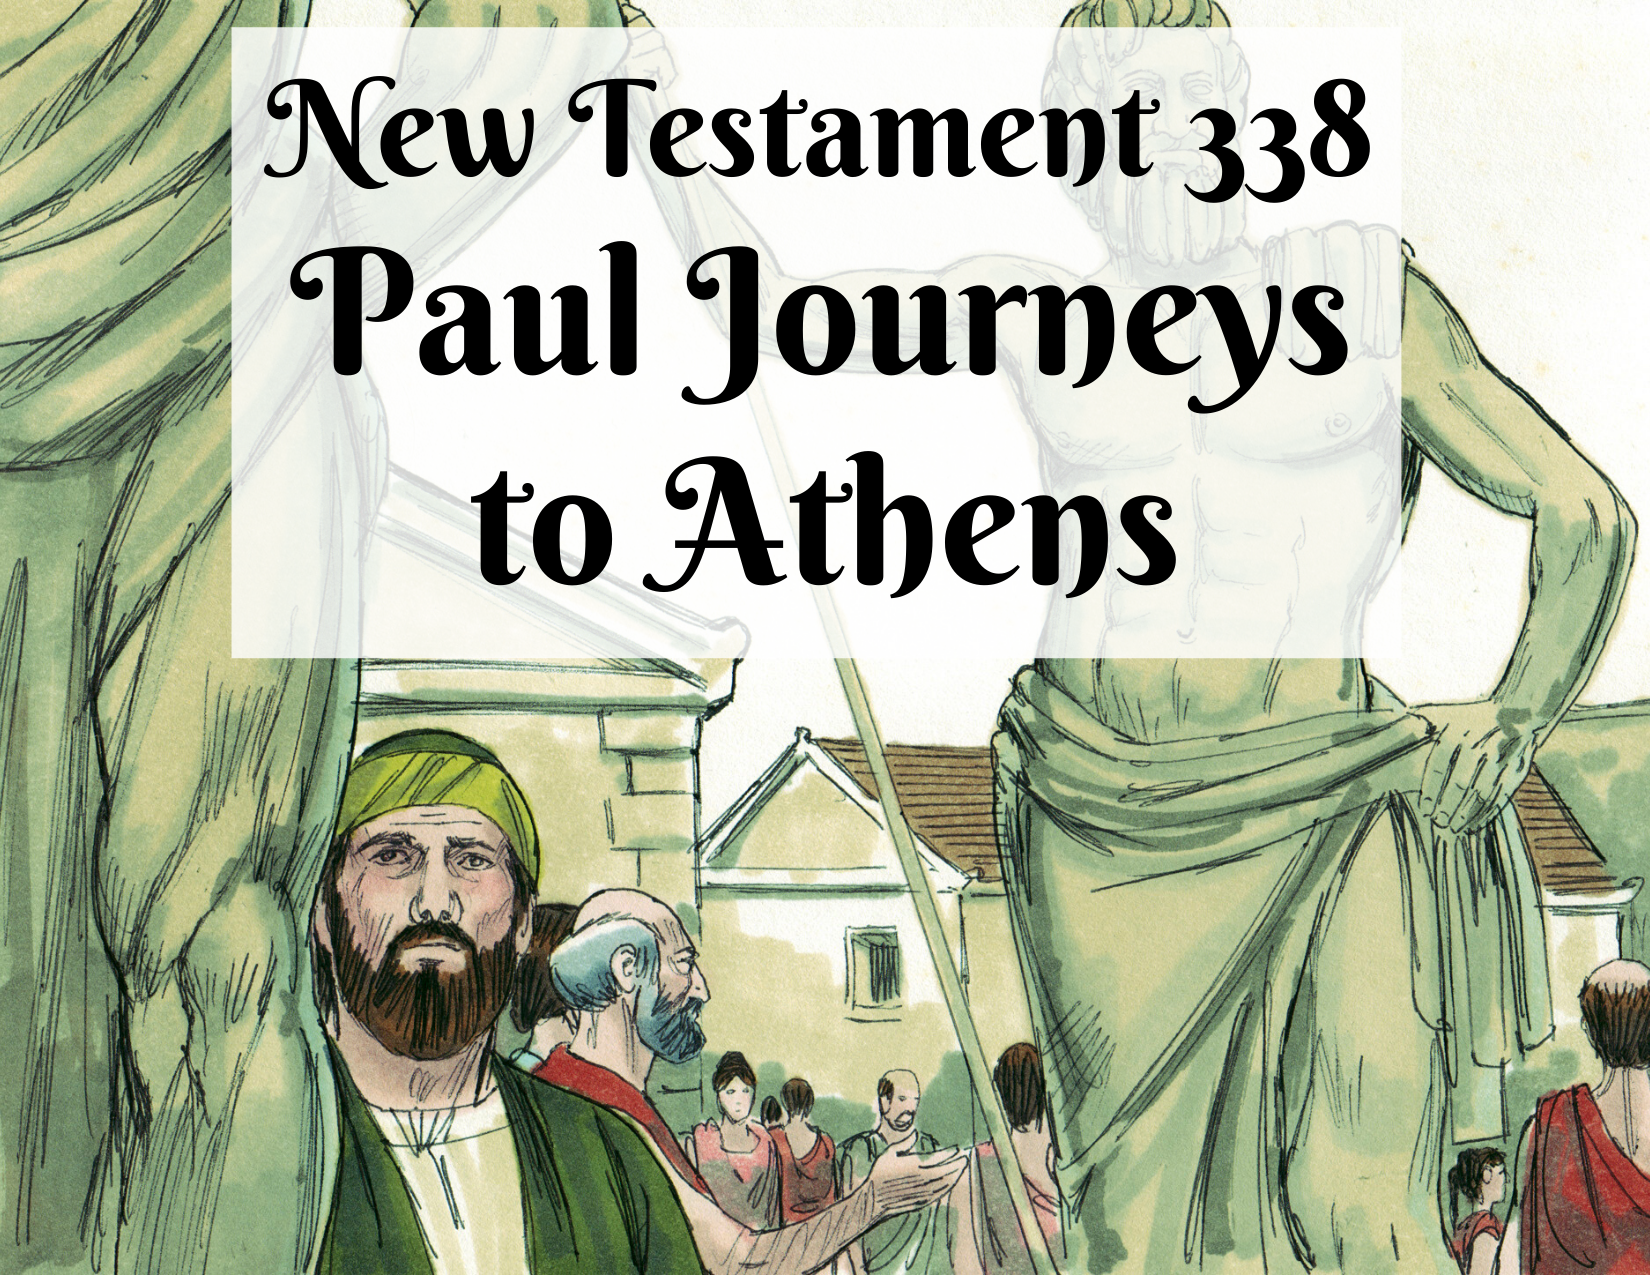 NT 338 - Paul Journeys to Athens